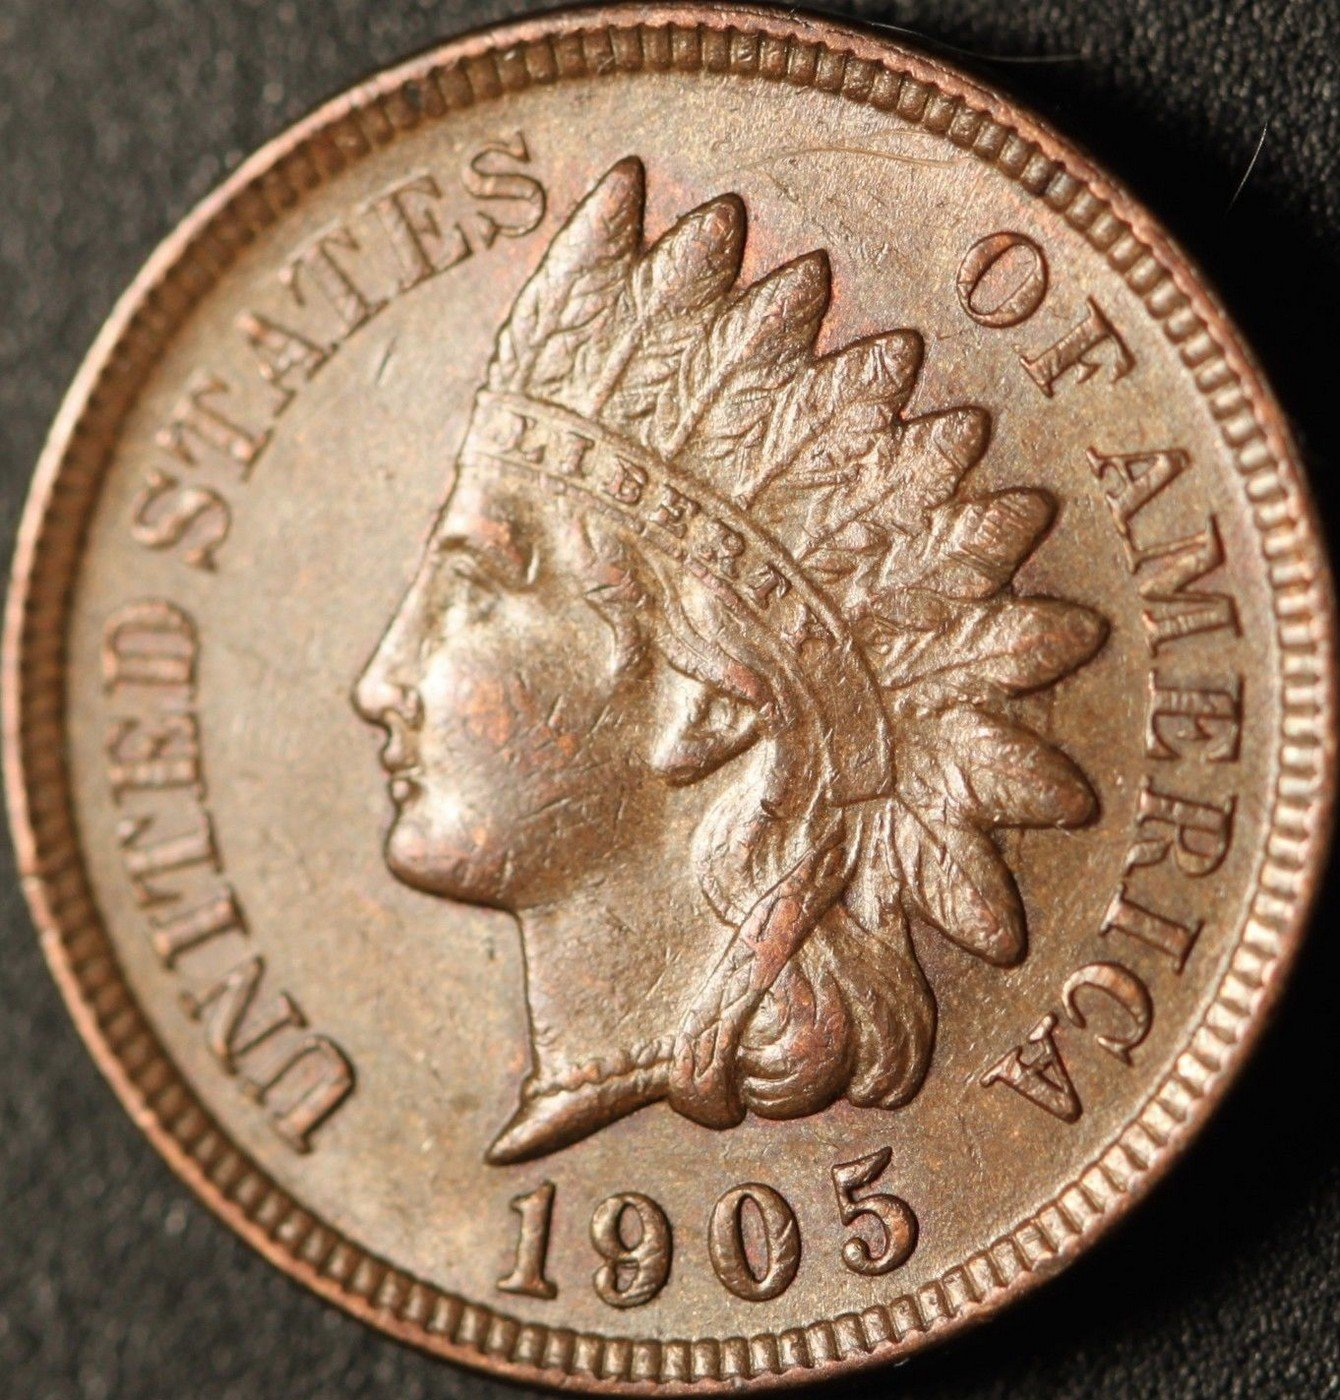 1905 RPD-006 - Indian Head Cent - Photo by Ed Nathanson